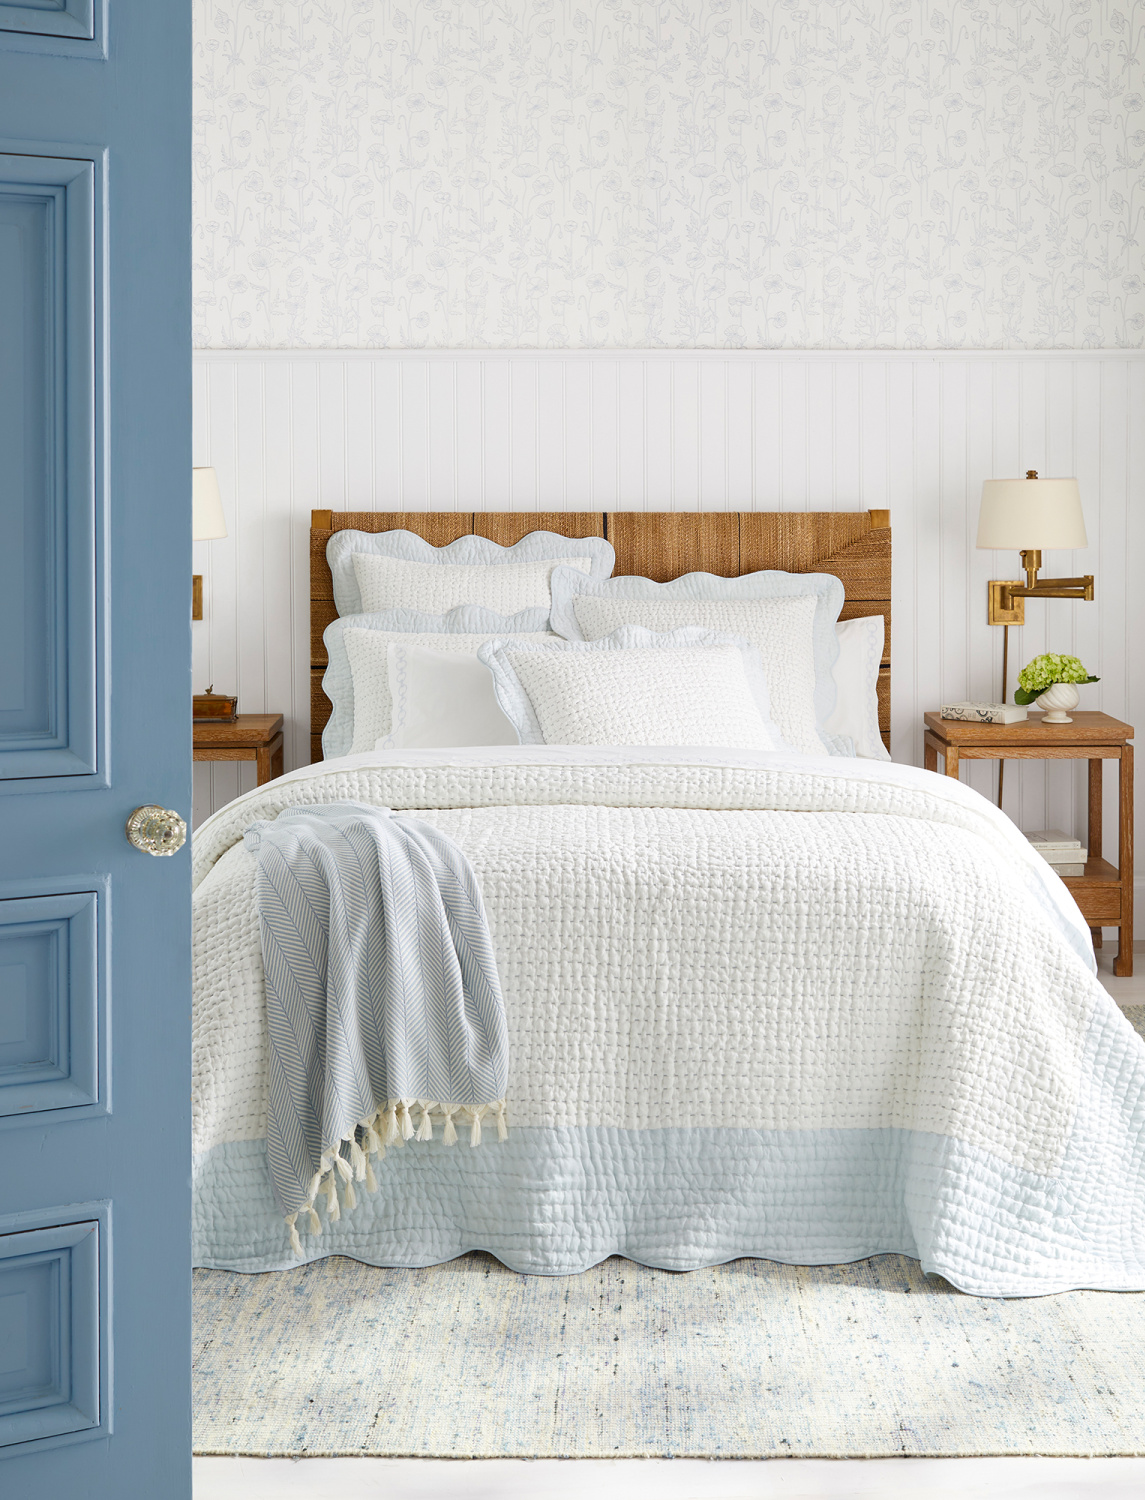 Coastal bedroom with classic blue painted vintage door and soft, airy, light and bright white quilt with light blue band - Serena & Lily.